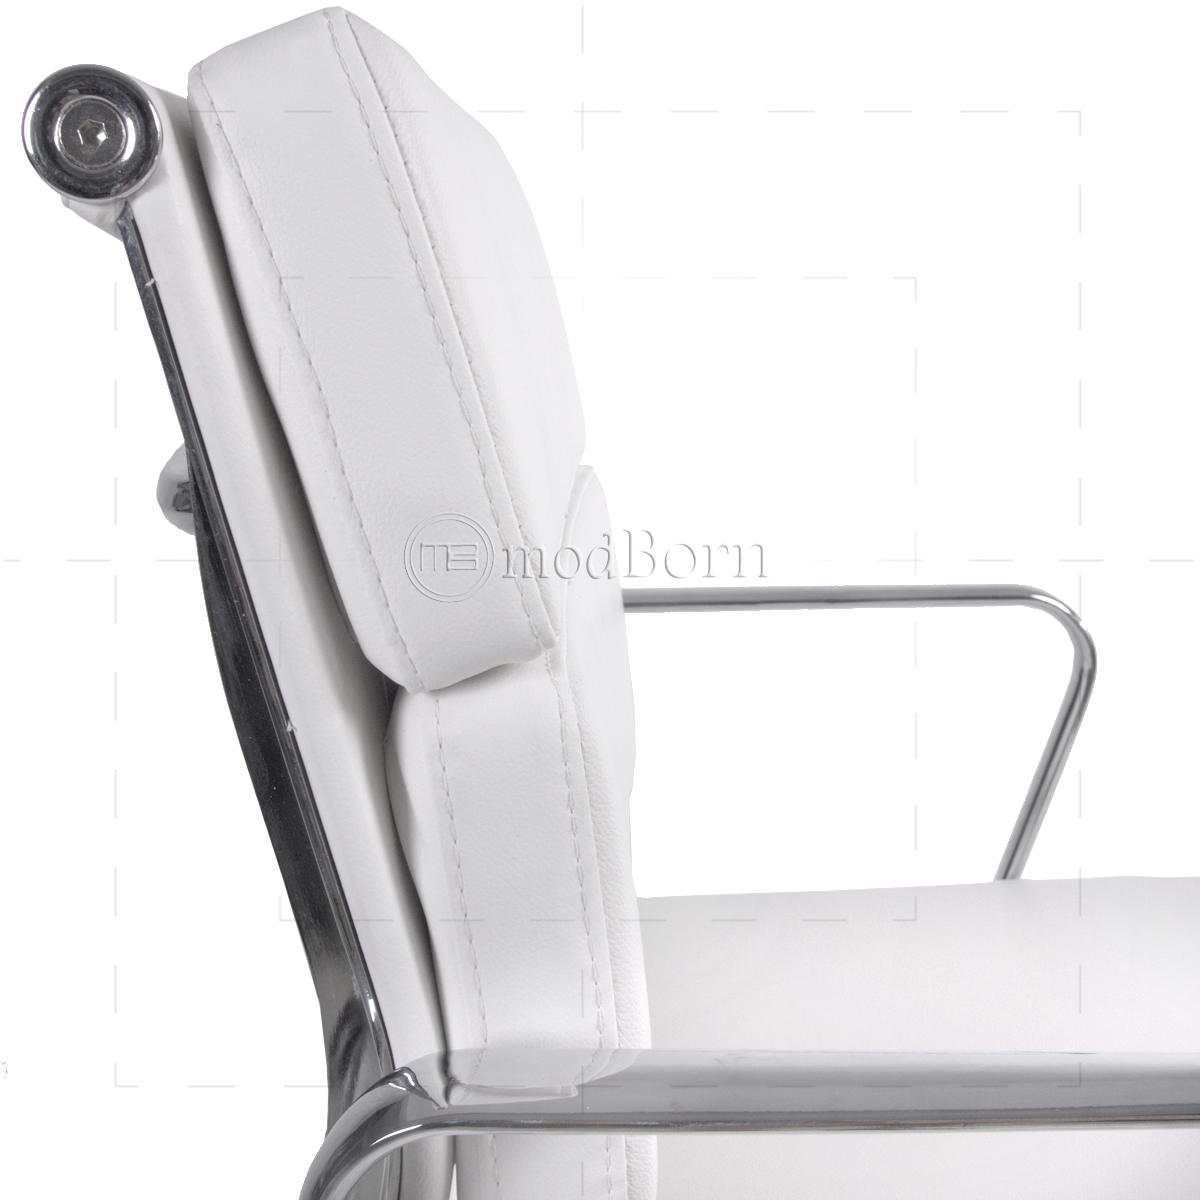 ea217 eames style office chair low back soft pad white leather